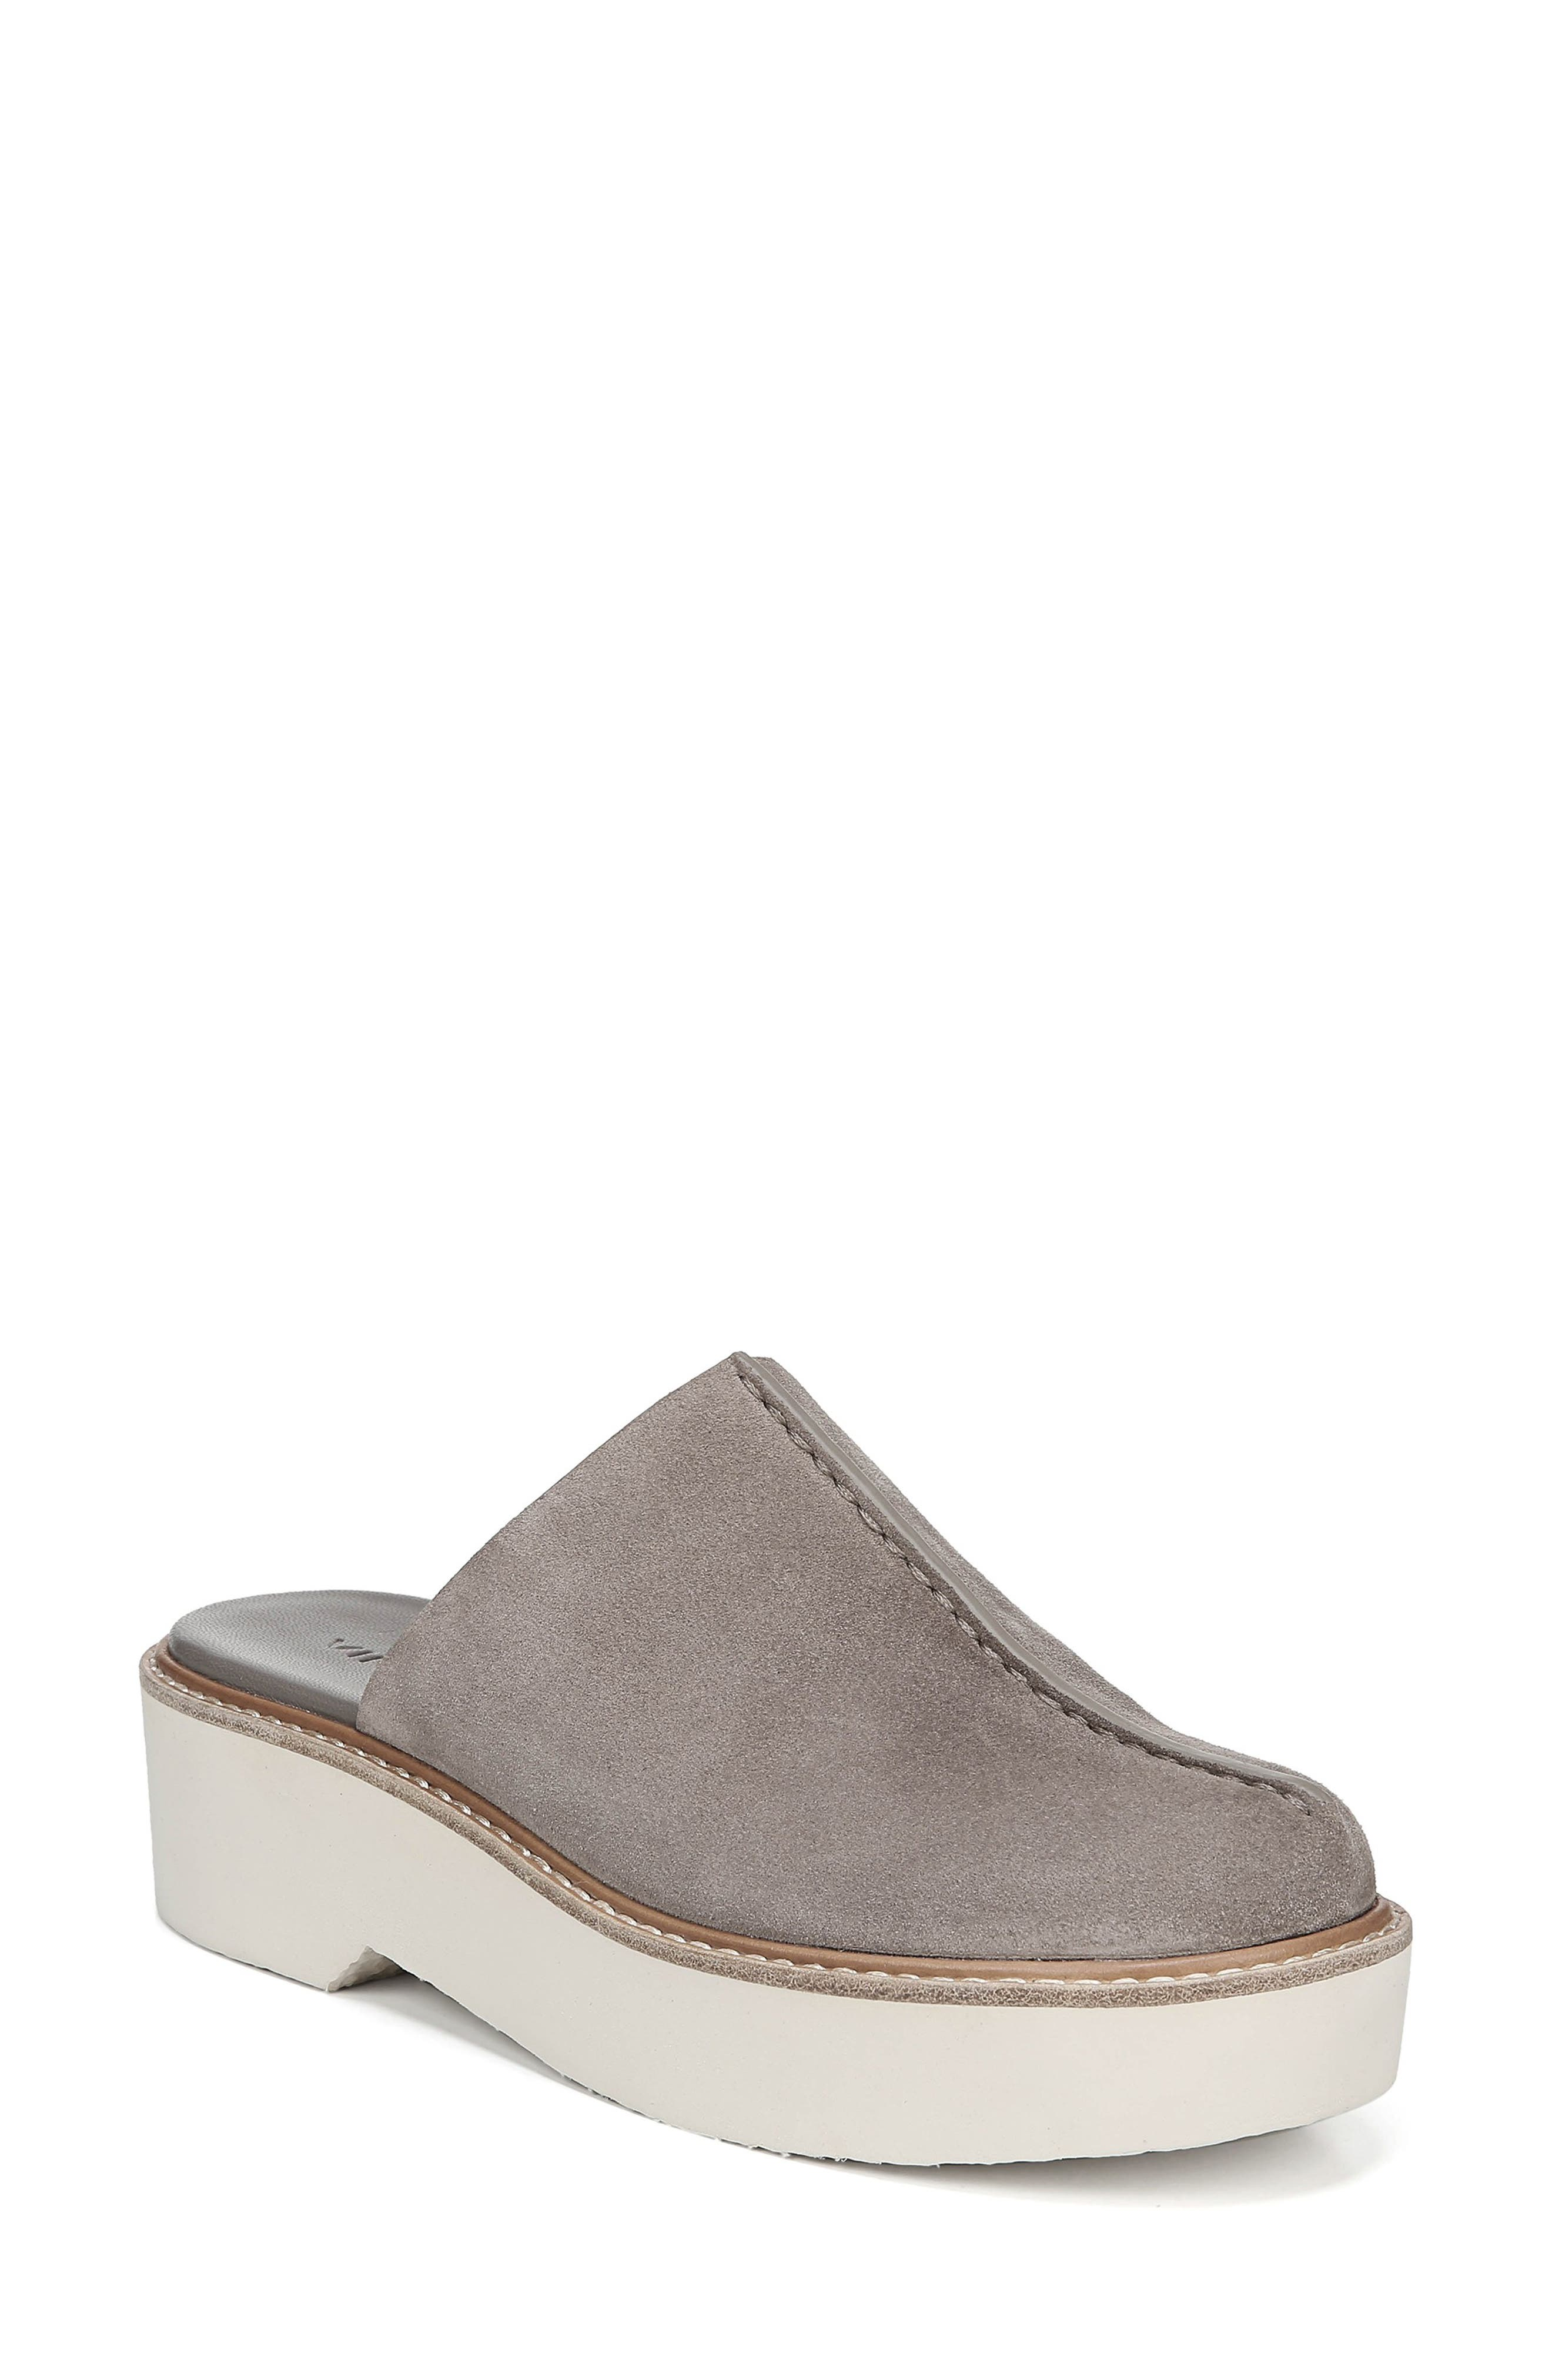 Adler Genuine Shearling Lined Platform Mule in Light Woodsmoke